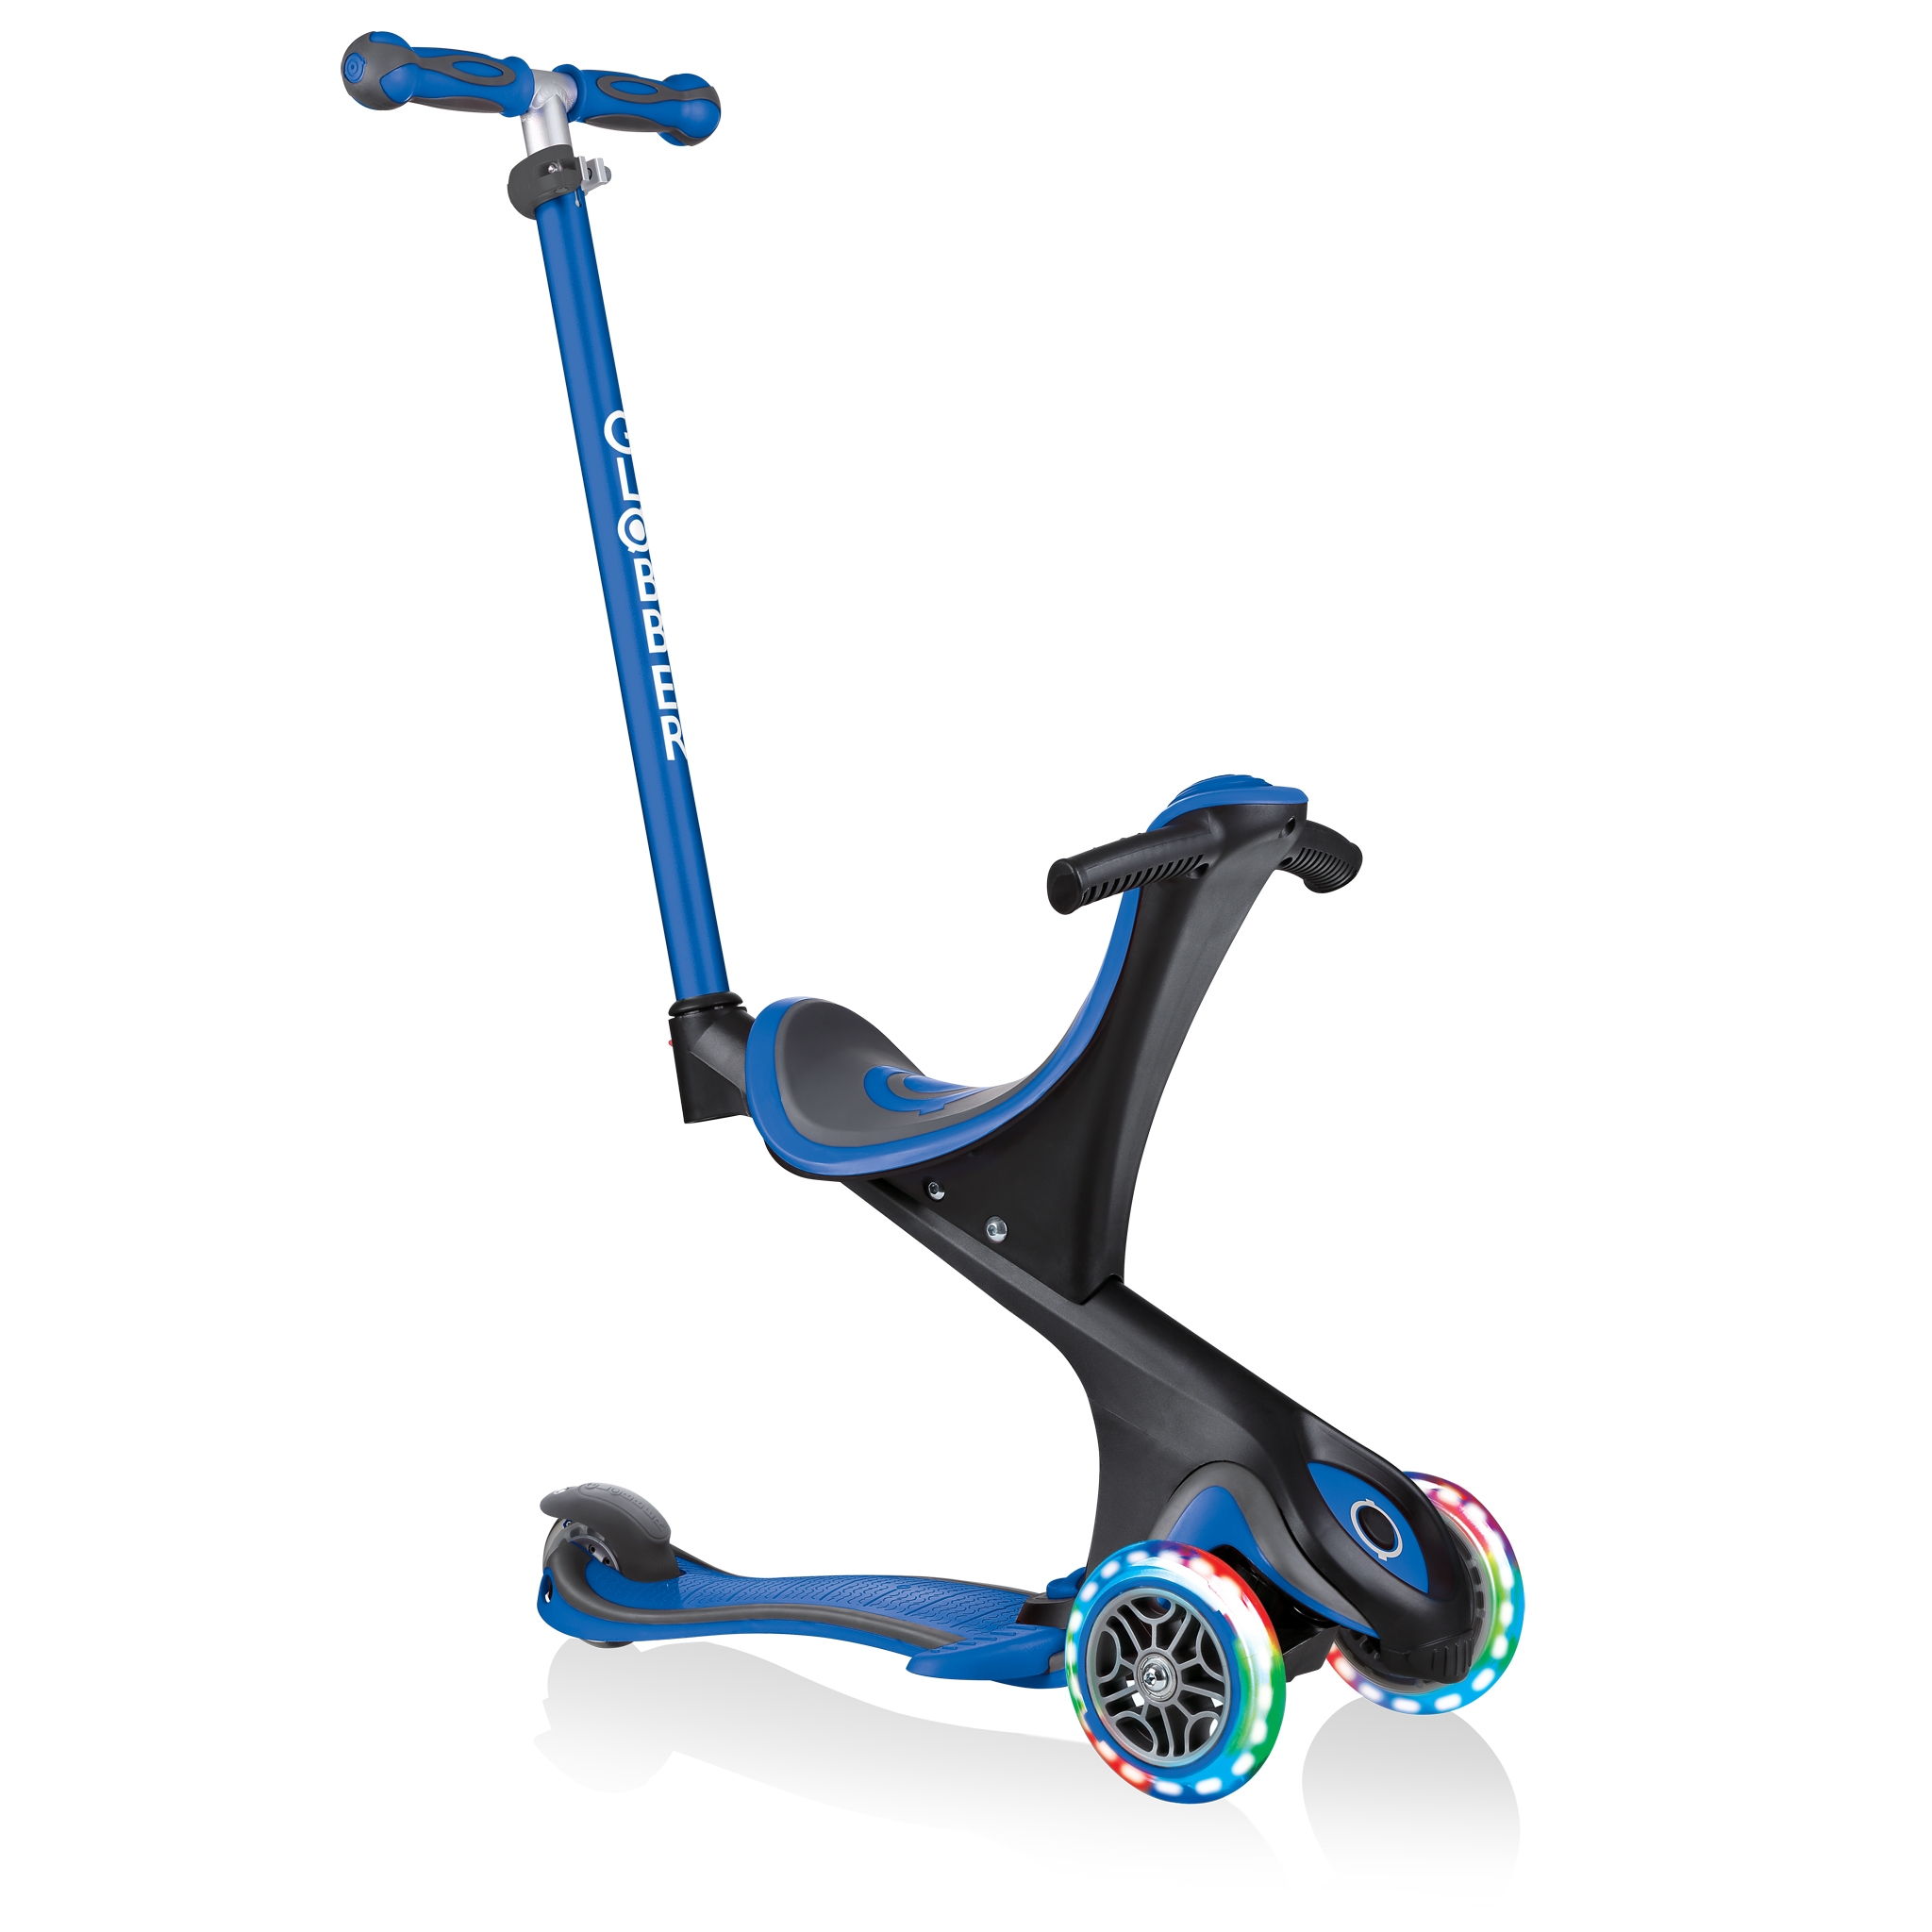 GO-UP-COMFORT-LIGHTS-scooter-with-seat-with-extra-wide-seat-navy-blue 0